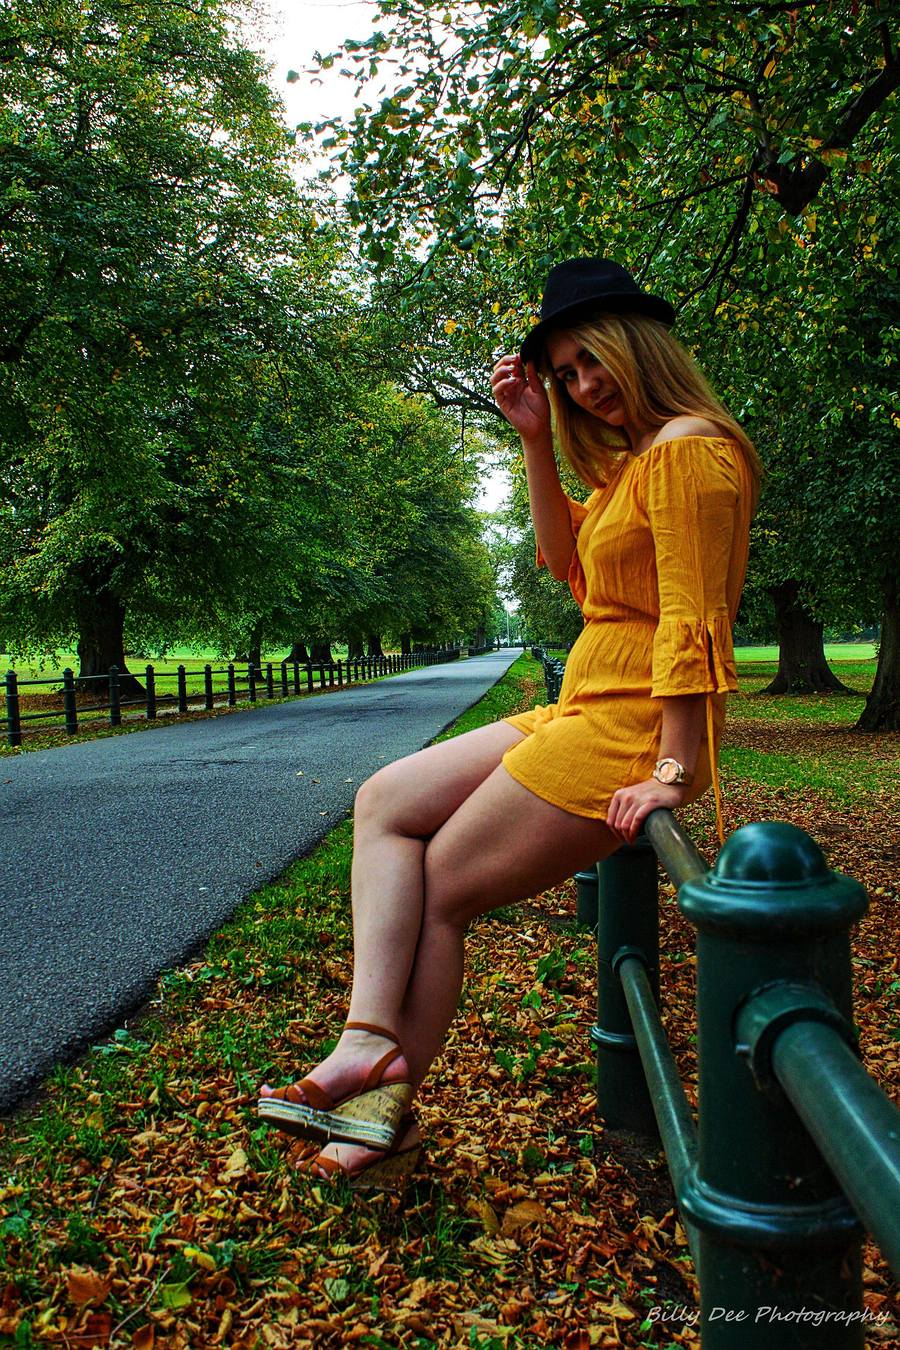 Photography by Billy Dee Photography, Model Nicola Deans / Uploaded 9th October 2018 @ 12:10 PM